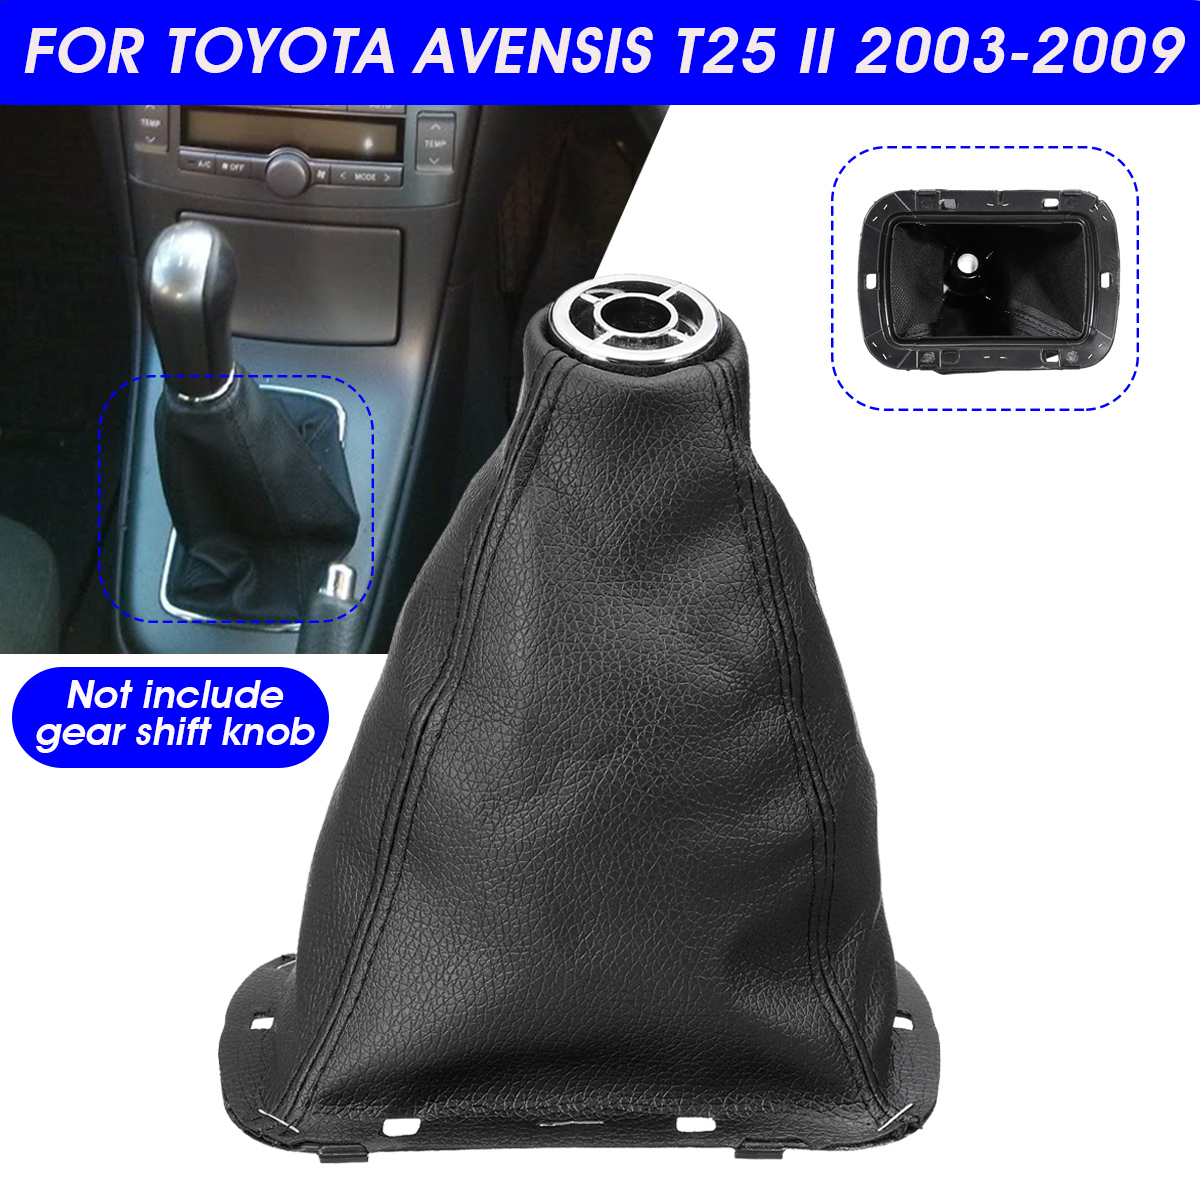 PU Leather Car Gear Gaiter Boot Cover Gear Shift Gaitor Boot For Toyota Avensis T25 MK2 II 2003-2009